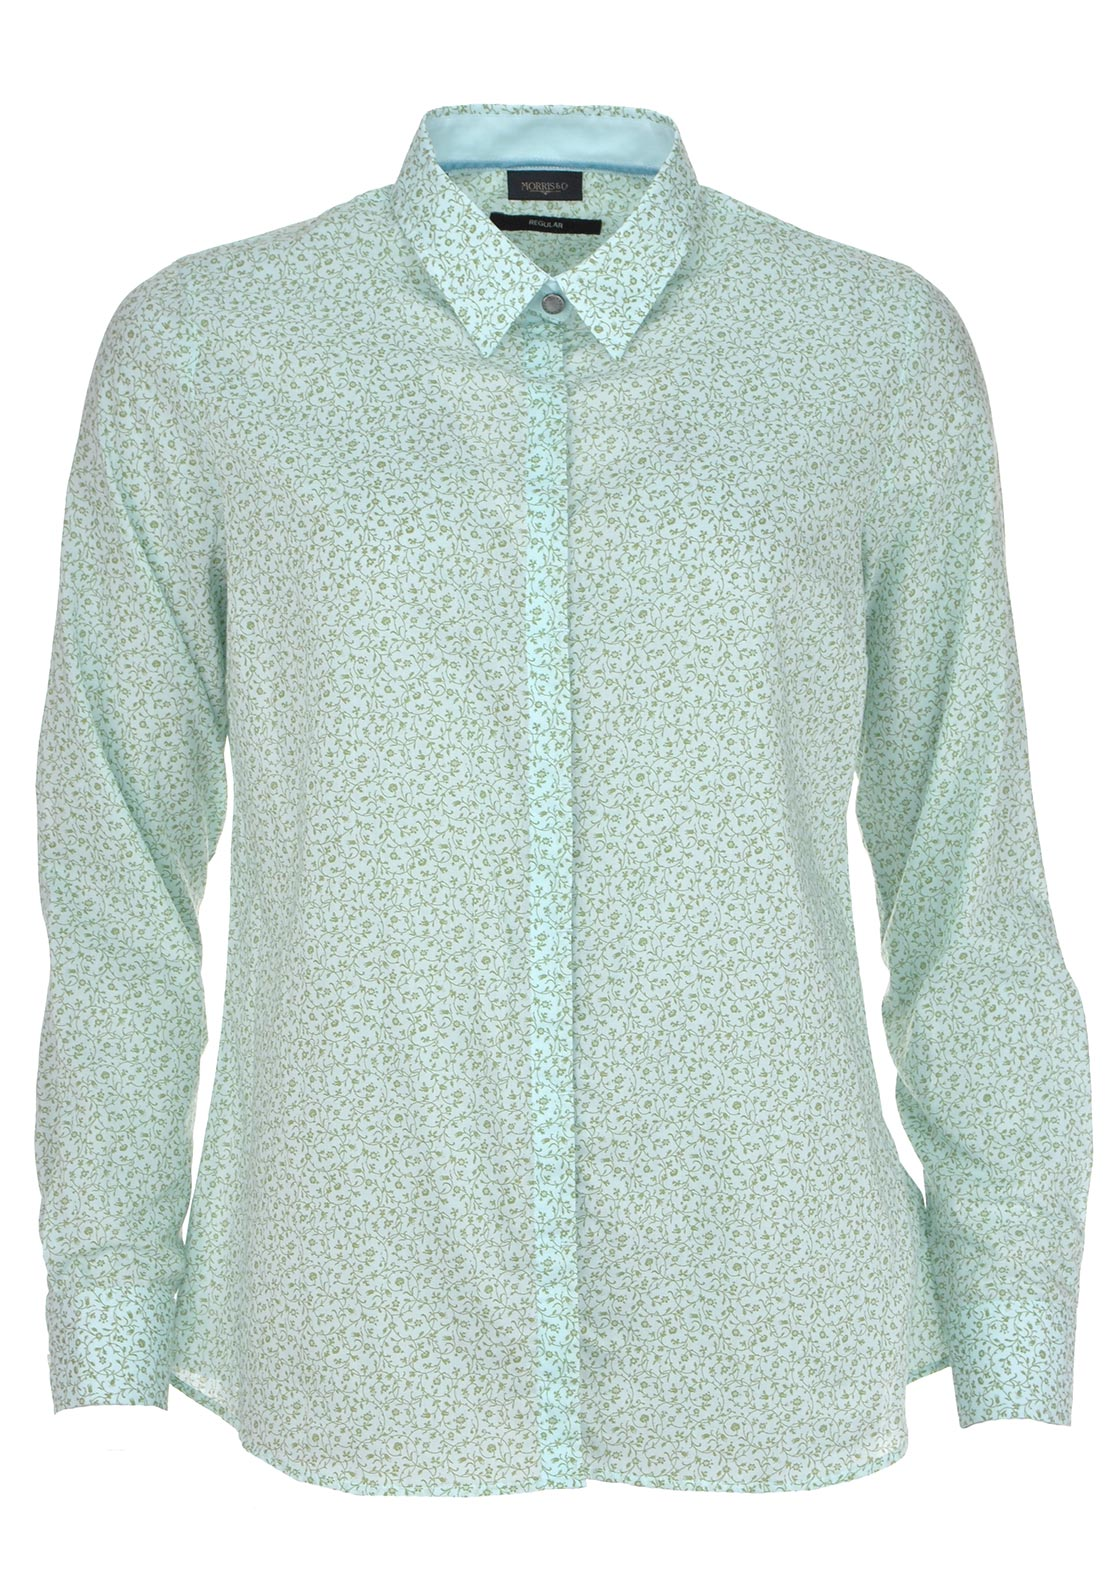 Barbour Womens May Blouse, Summersky